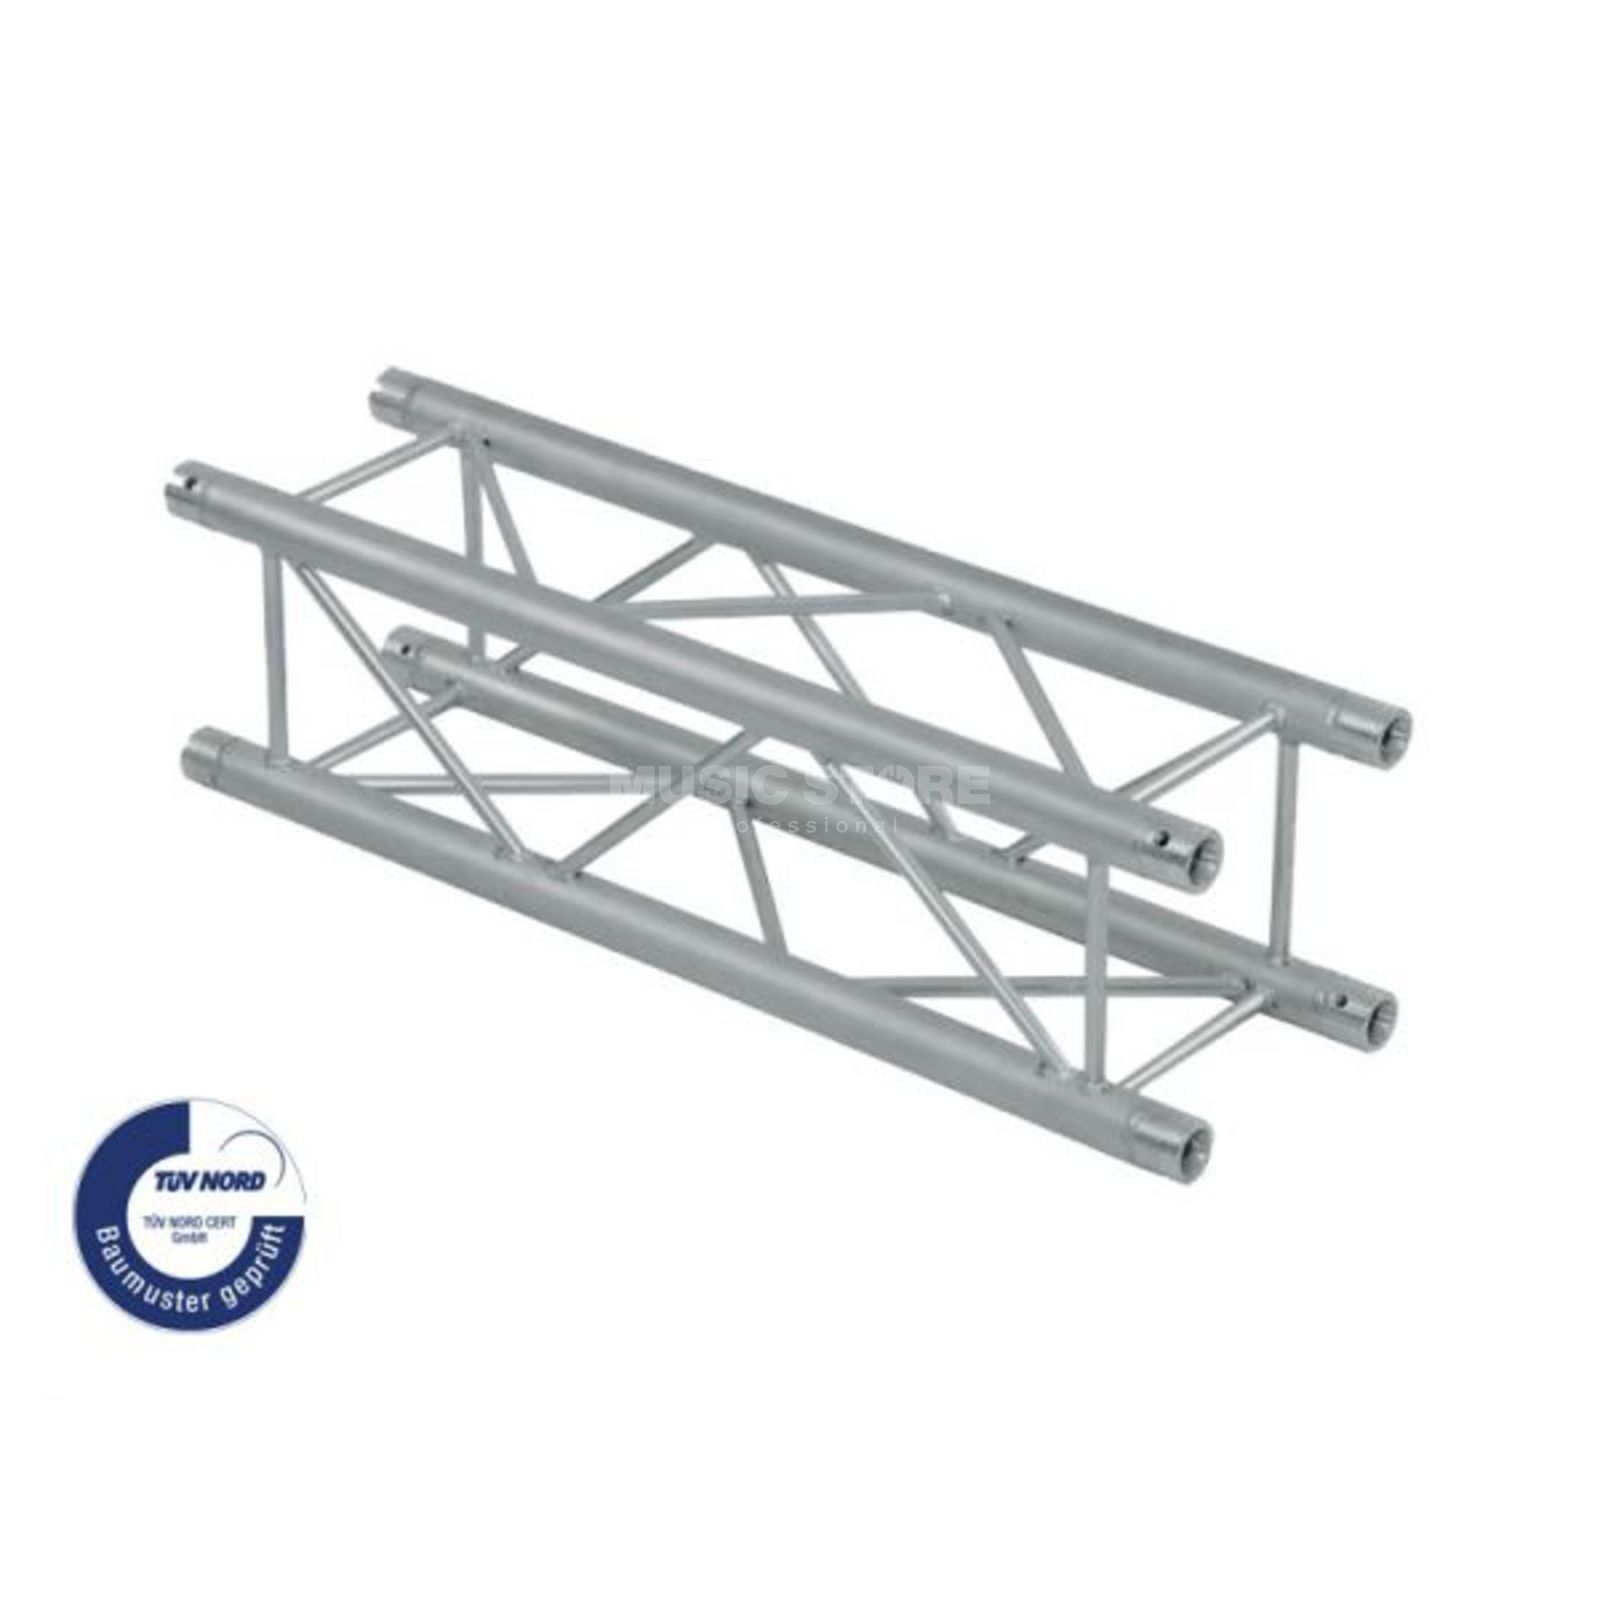 DURATRUSS DT 34-400, 4-Point Truss 4,0 m incl.  Conical Coupler Produktbillede